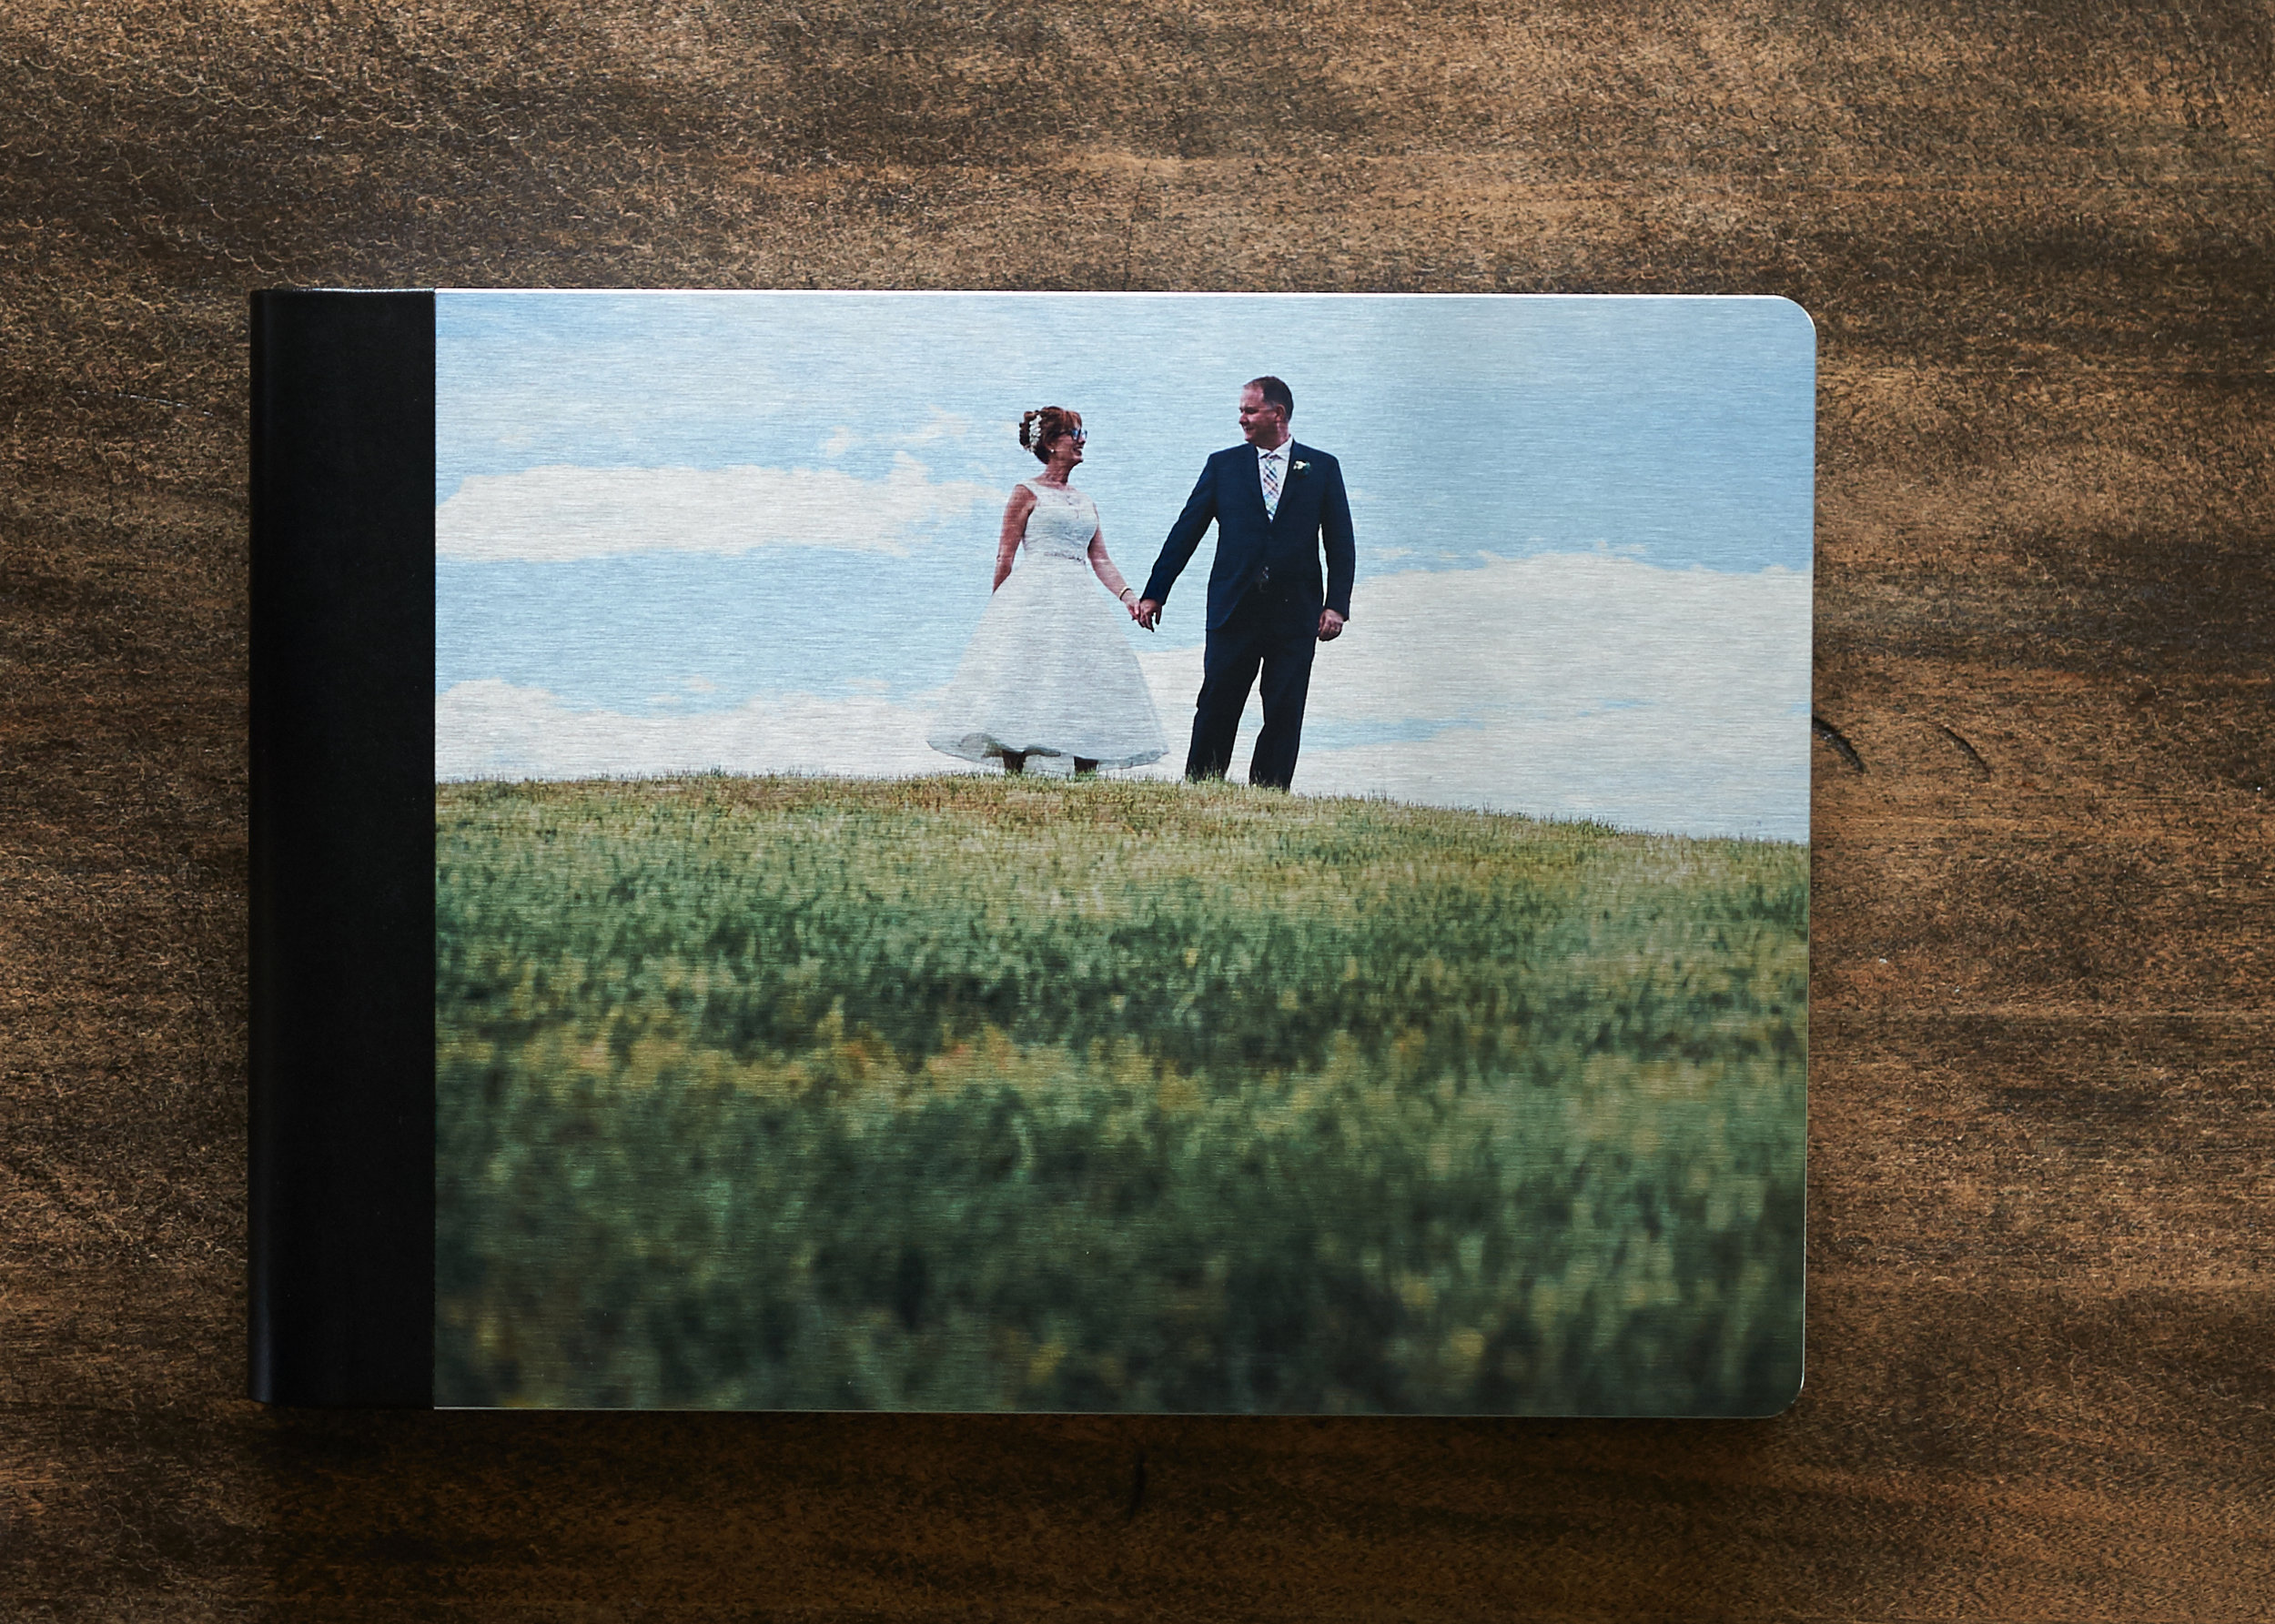 Wedding Albums - Professionally designed Italian made beauties, with archival papers, and a wide range of covers including our absolute favorite: A brushed metal color cover, and eco-leather binding. Wedding Albums start at $1100, with Parent Books available on request.